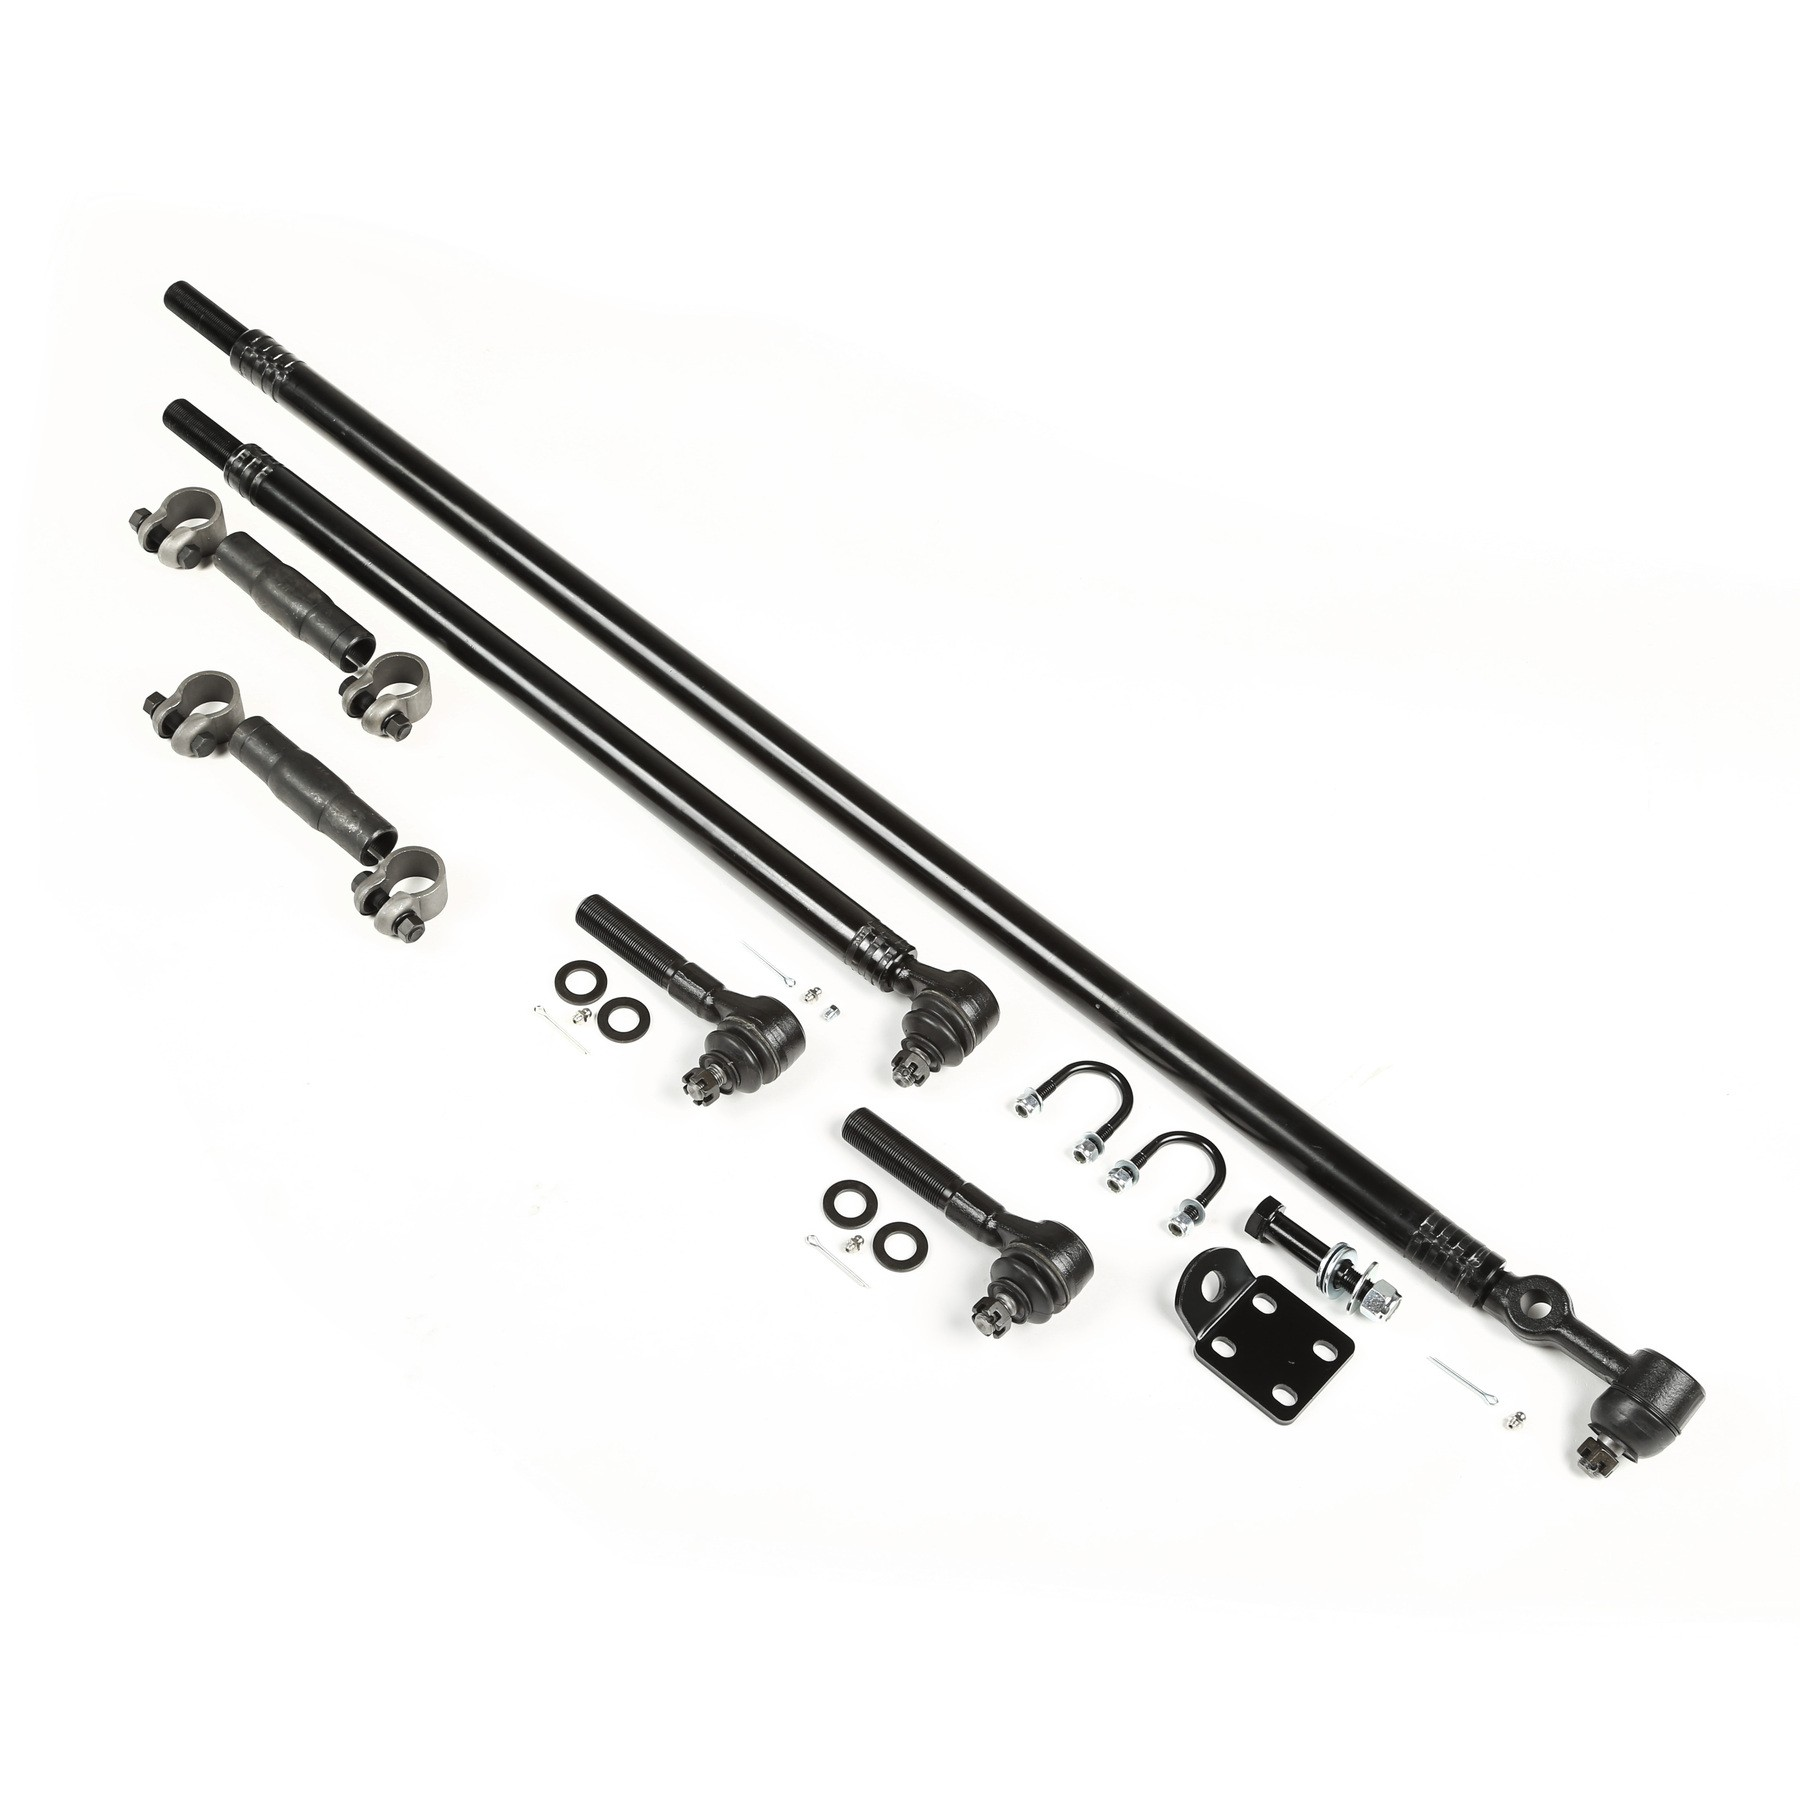 HD TIE ROD/ DRAG LINK KIT (FULL LINKAGE), 87-95 WRANGLER. INCLUDES ALL TIE ROD ENDS AND TUBES FOR DRAG LINK AND TIE ROD